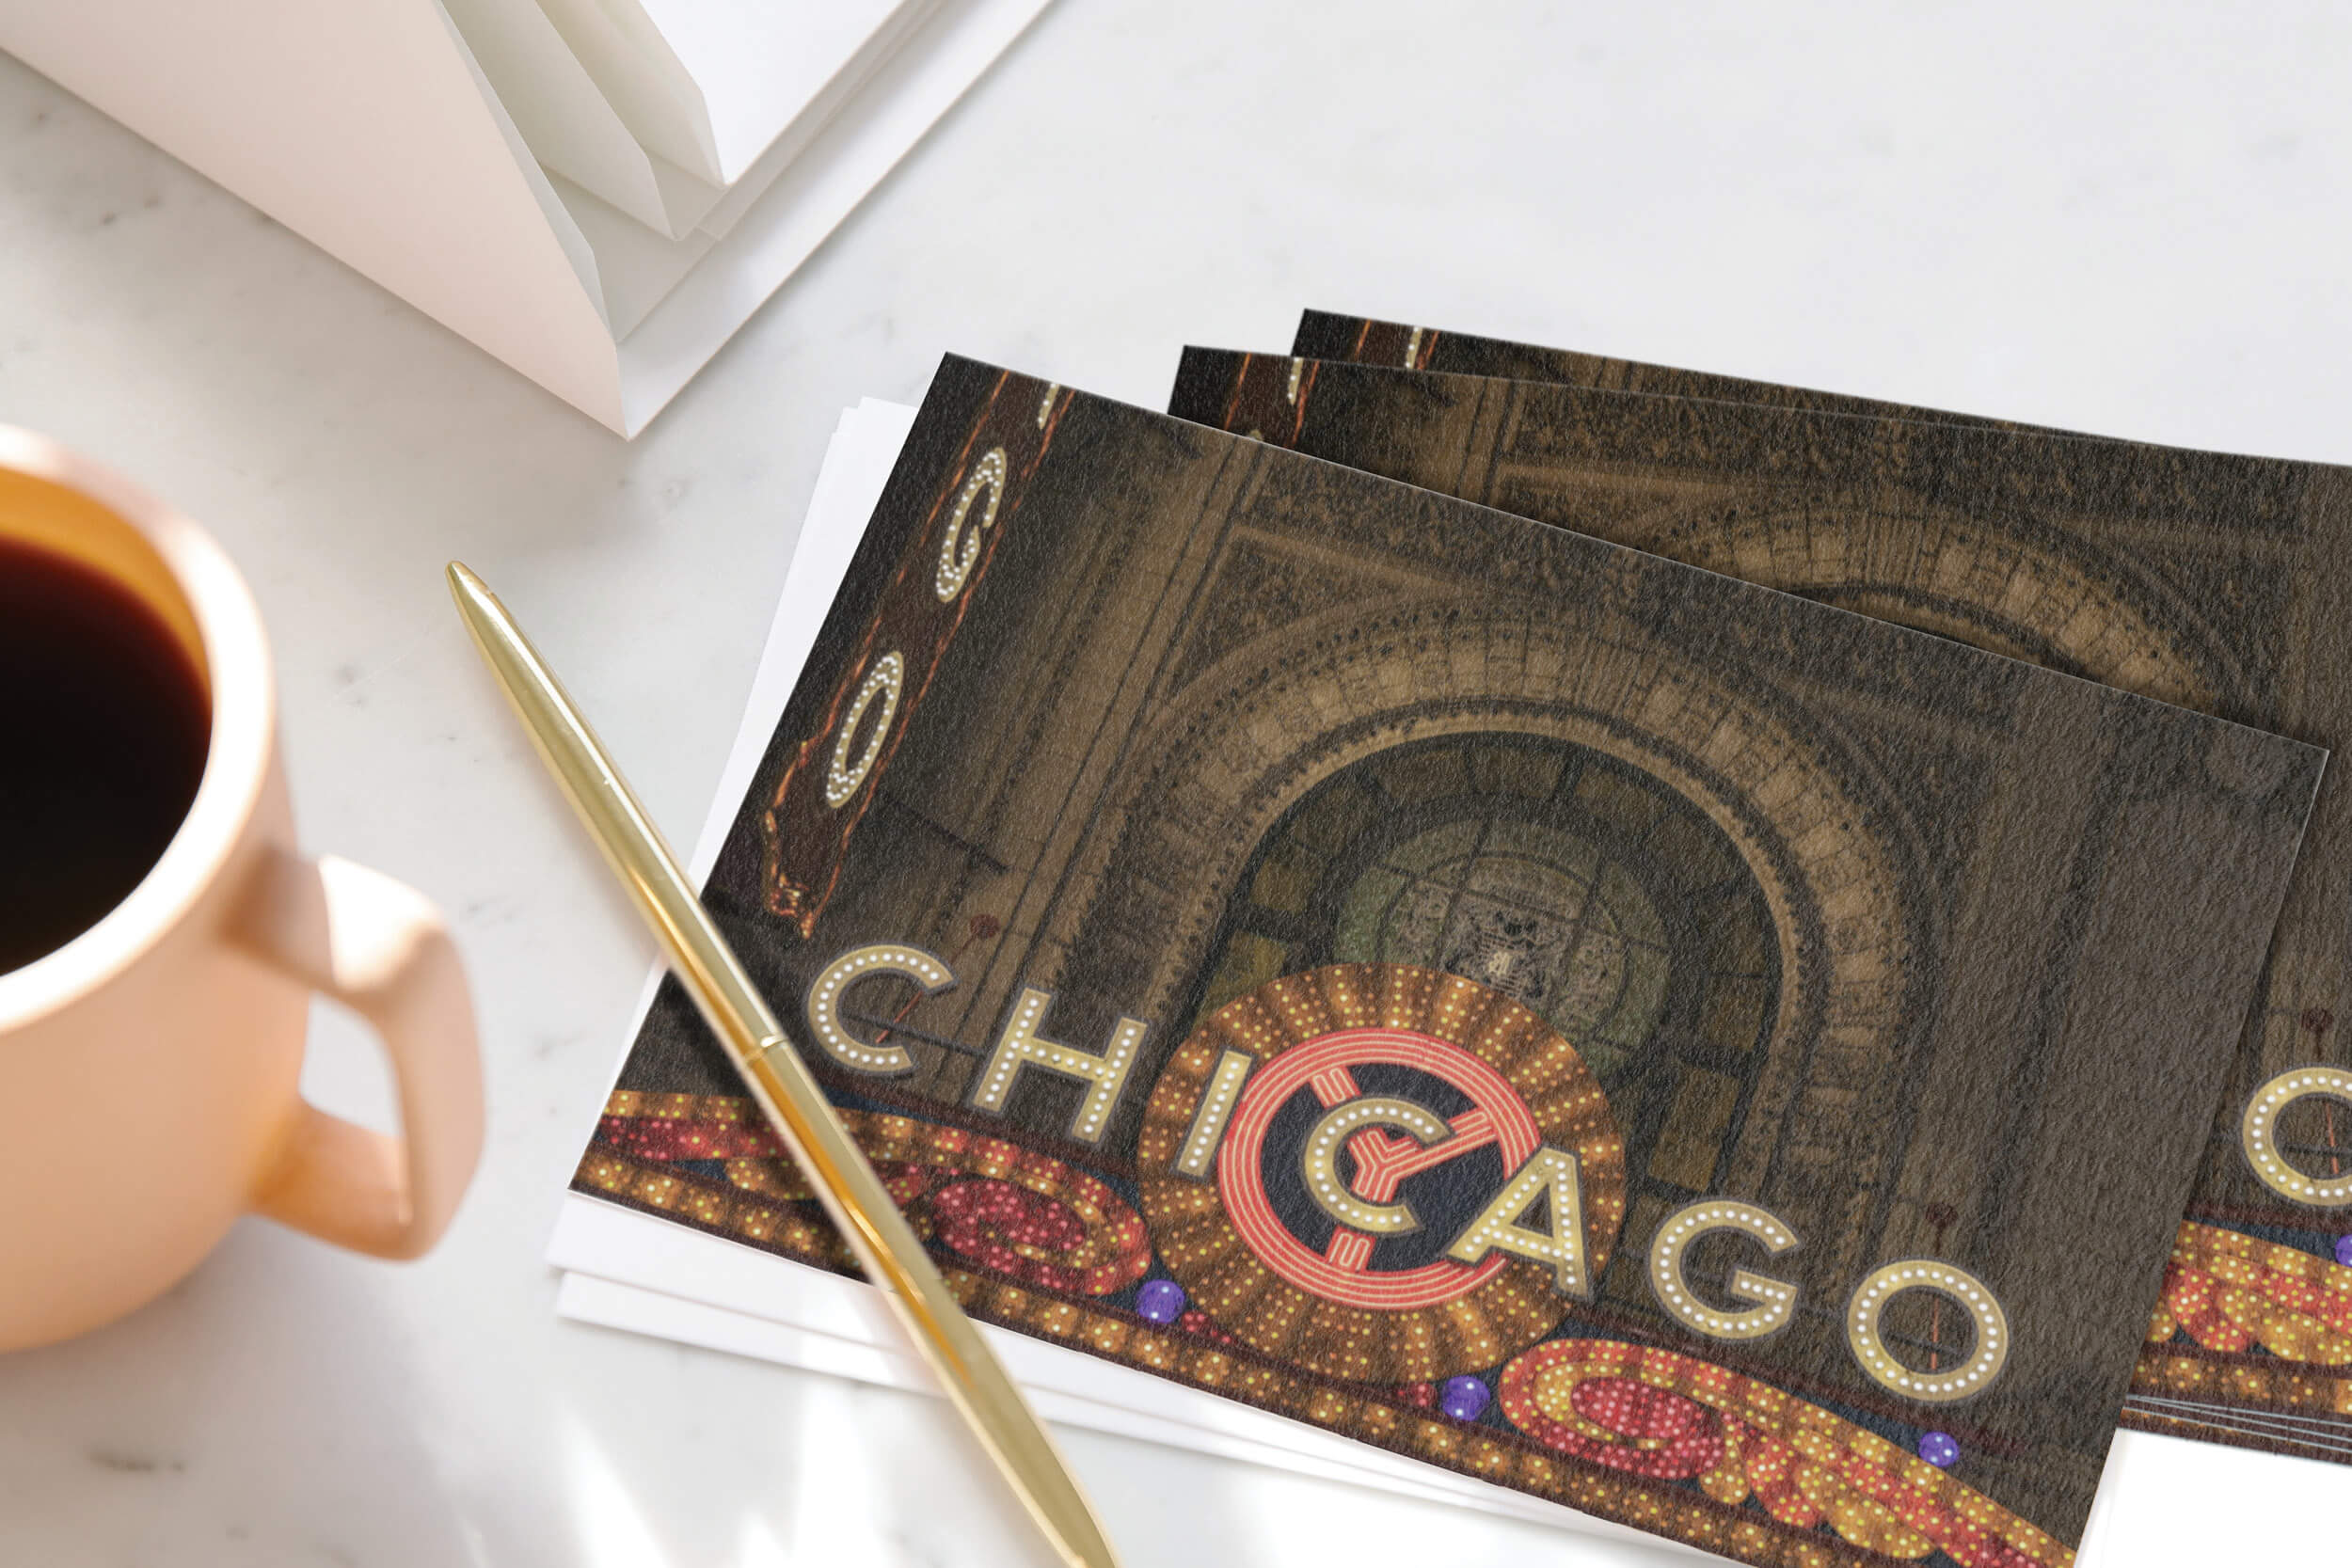 Pen resting on stack of Chicago postcards